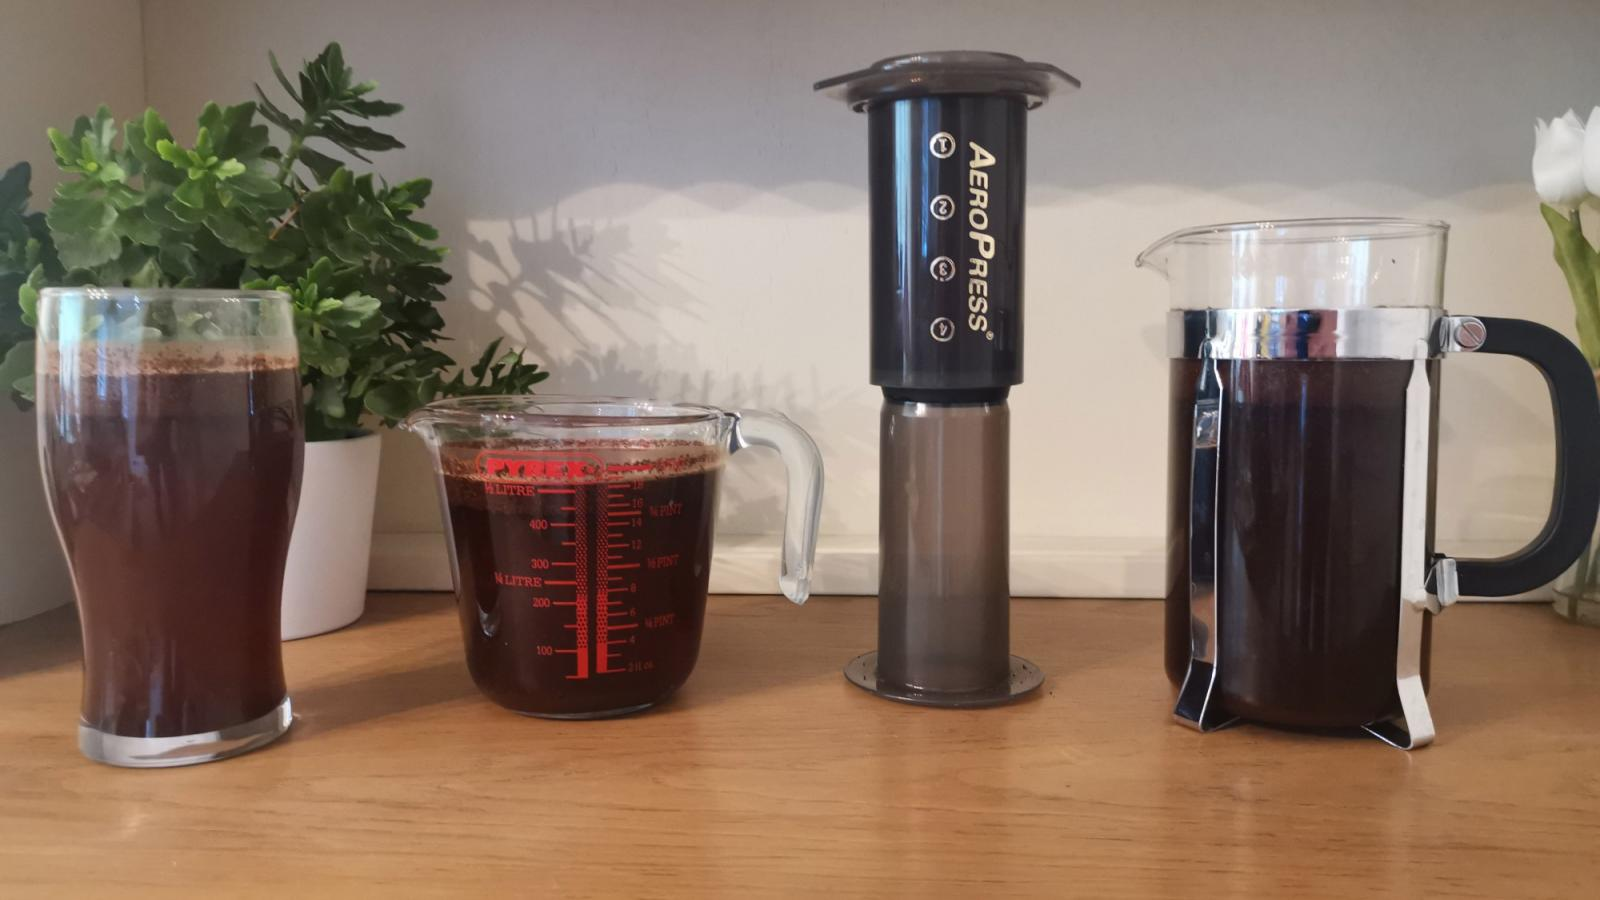 Making cold brew coffee at home